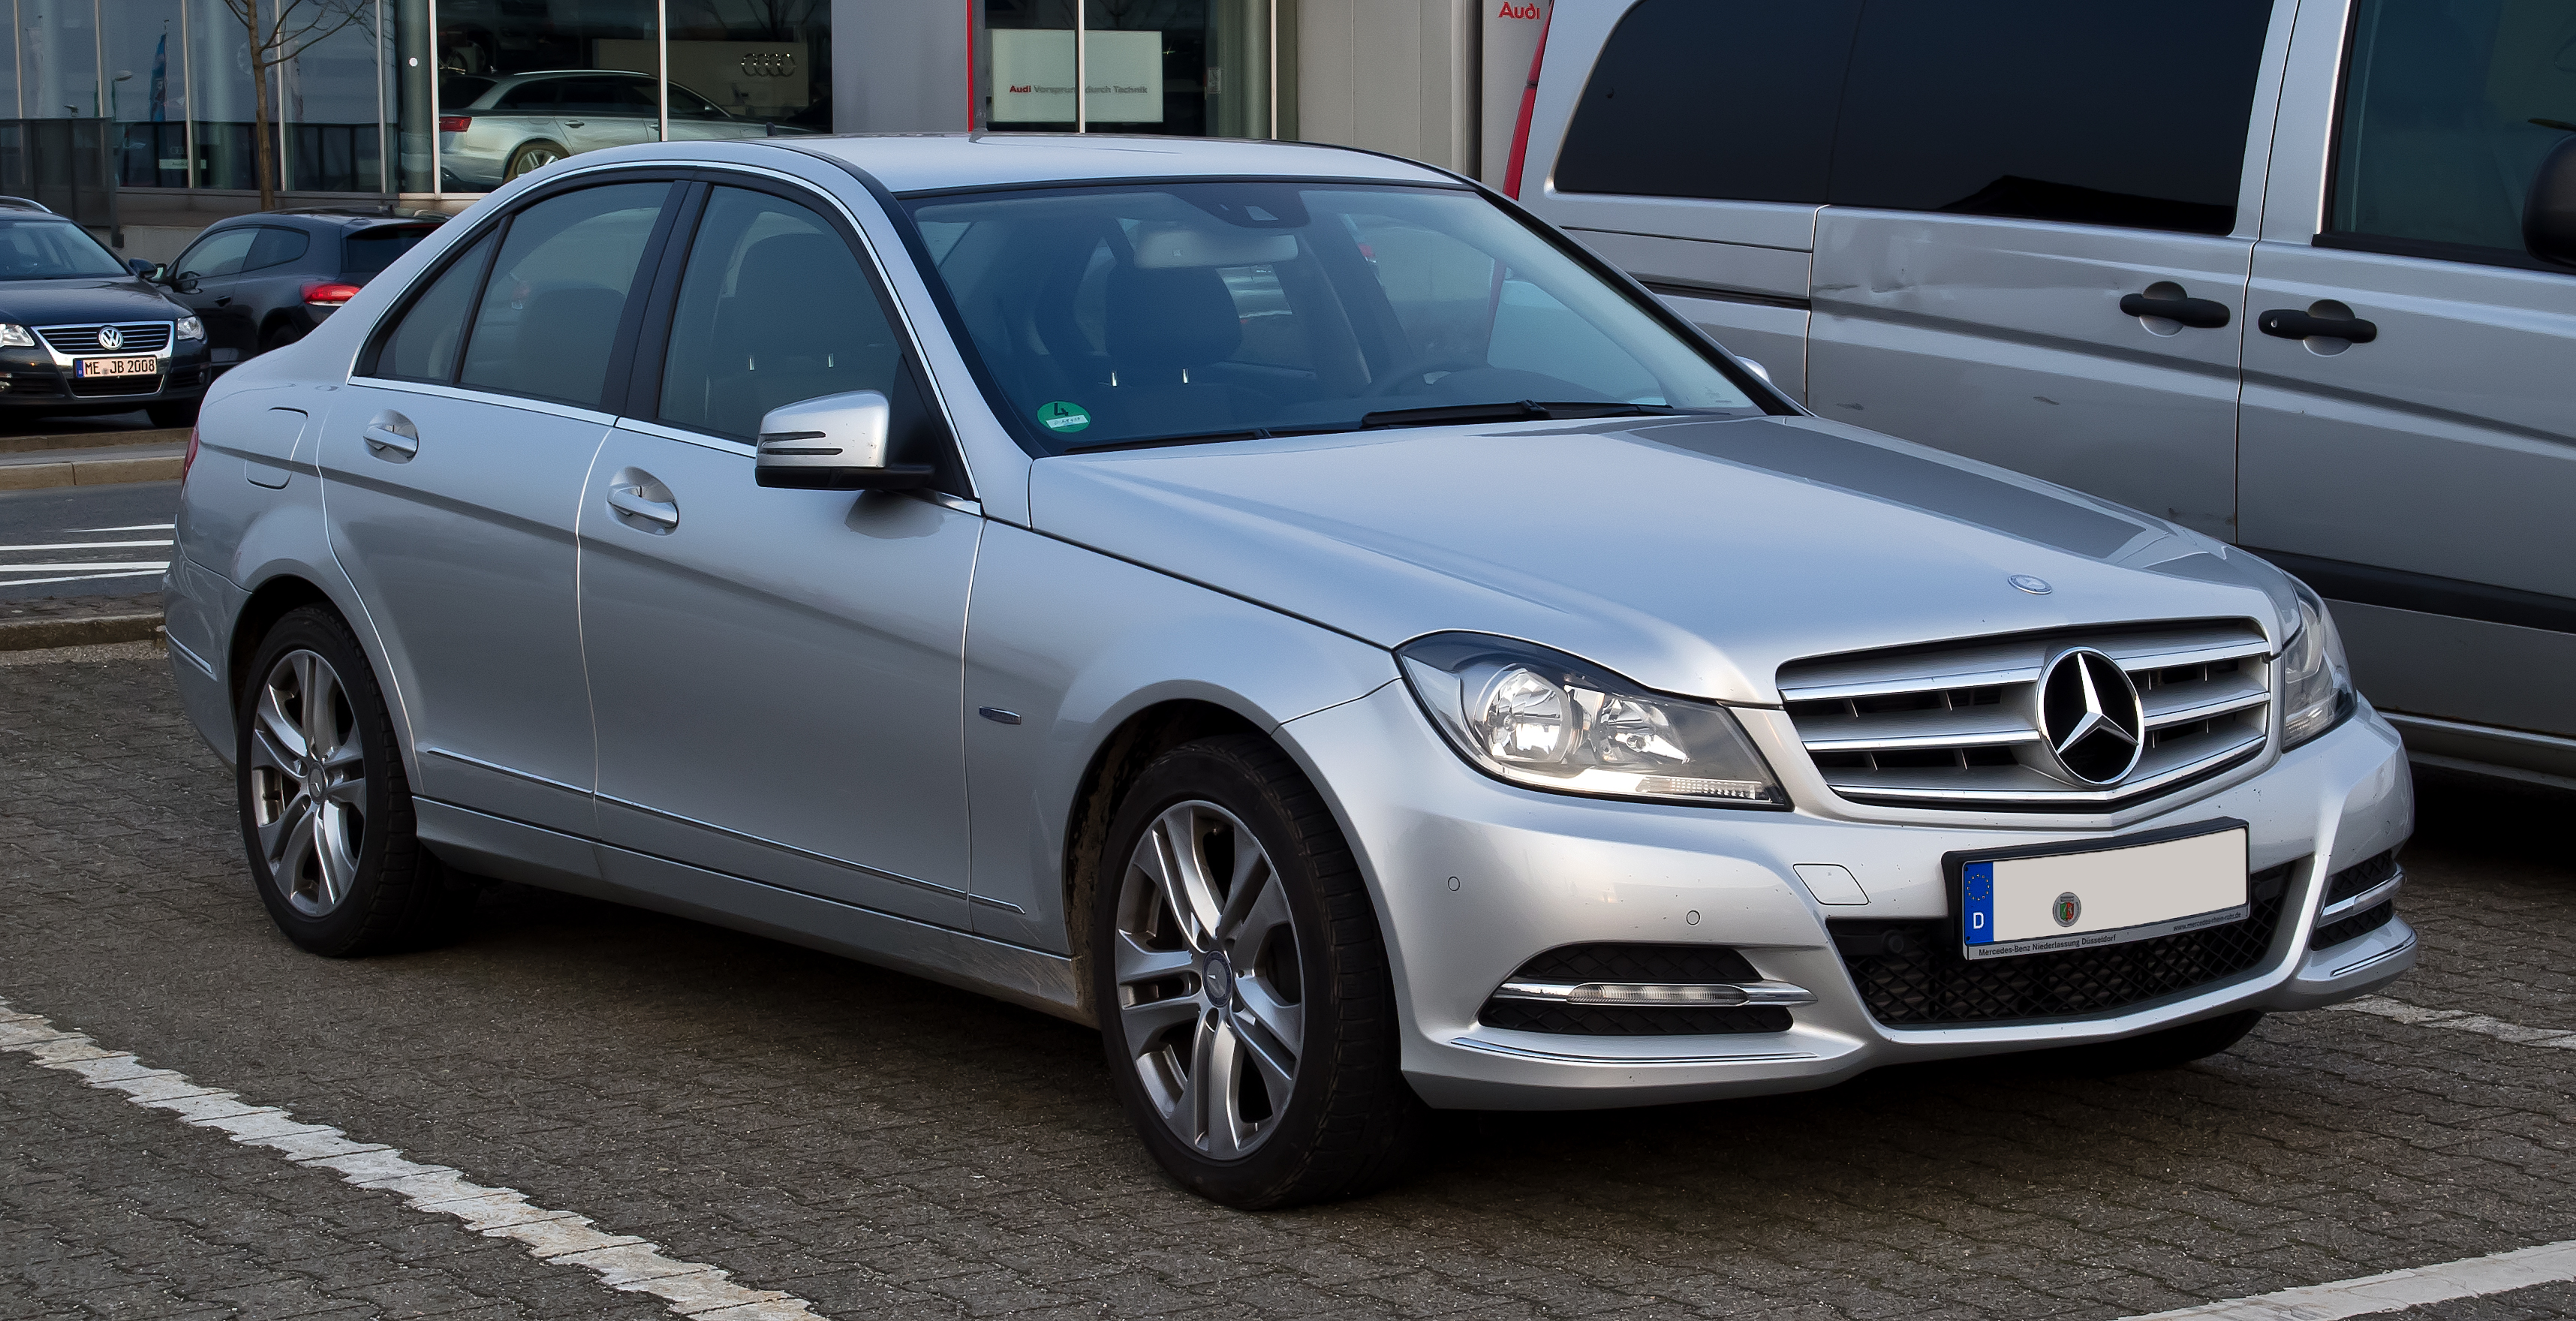 Mercedes-benz cdi photo - 8